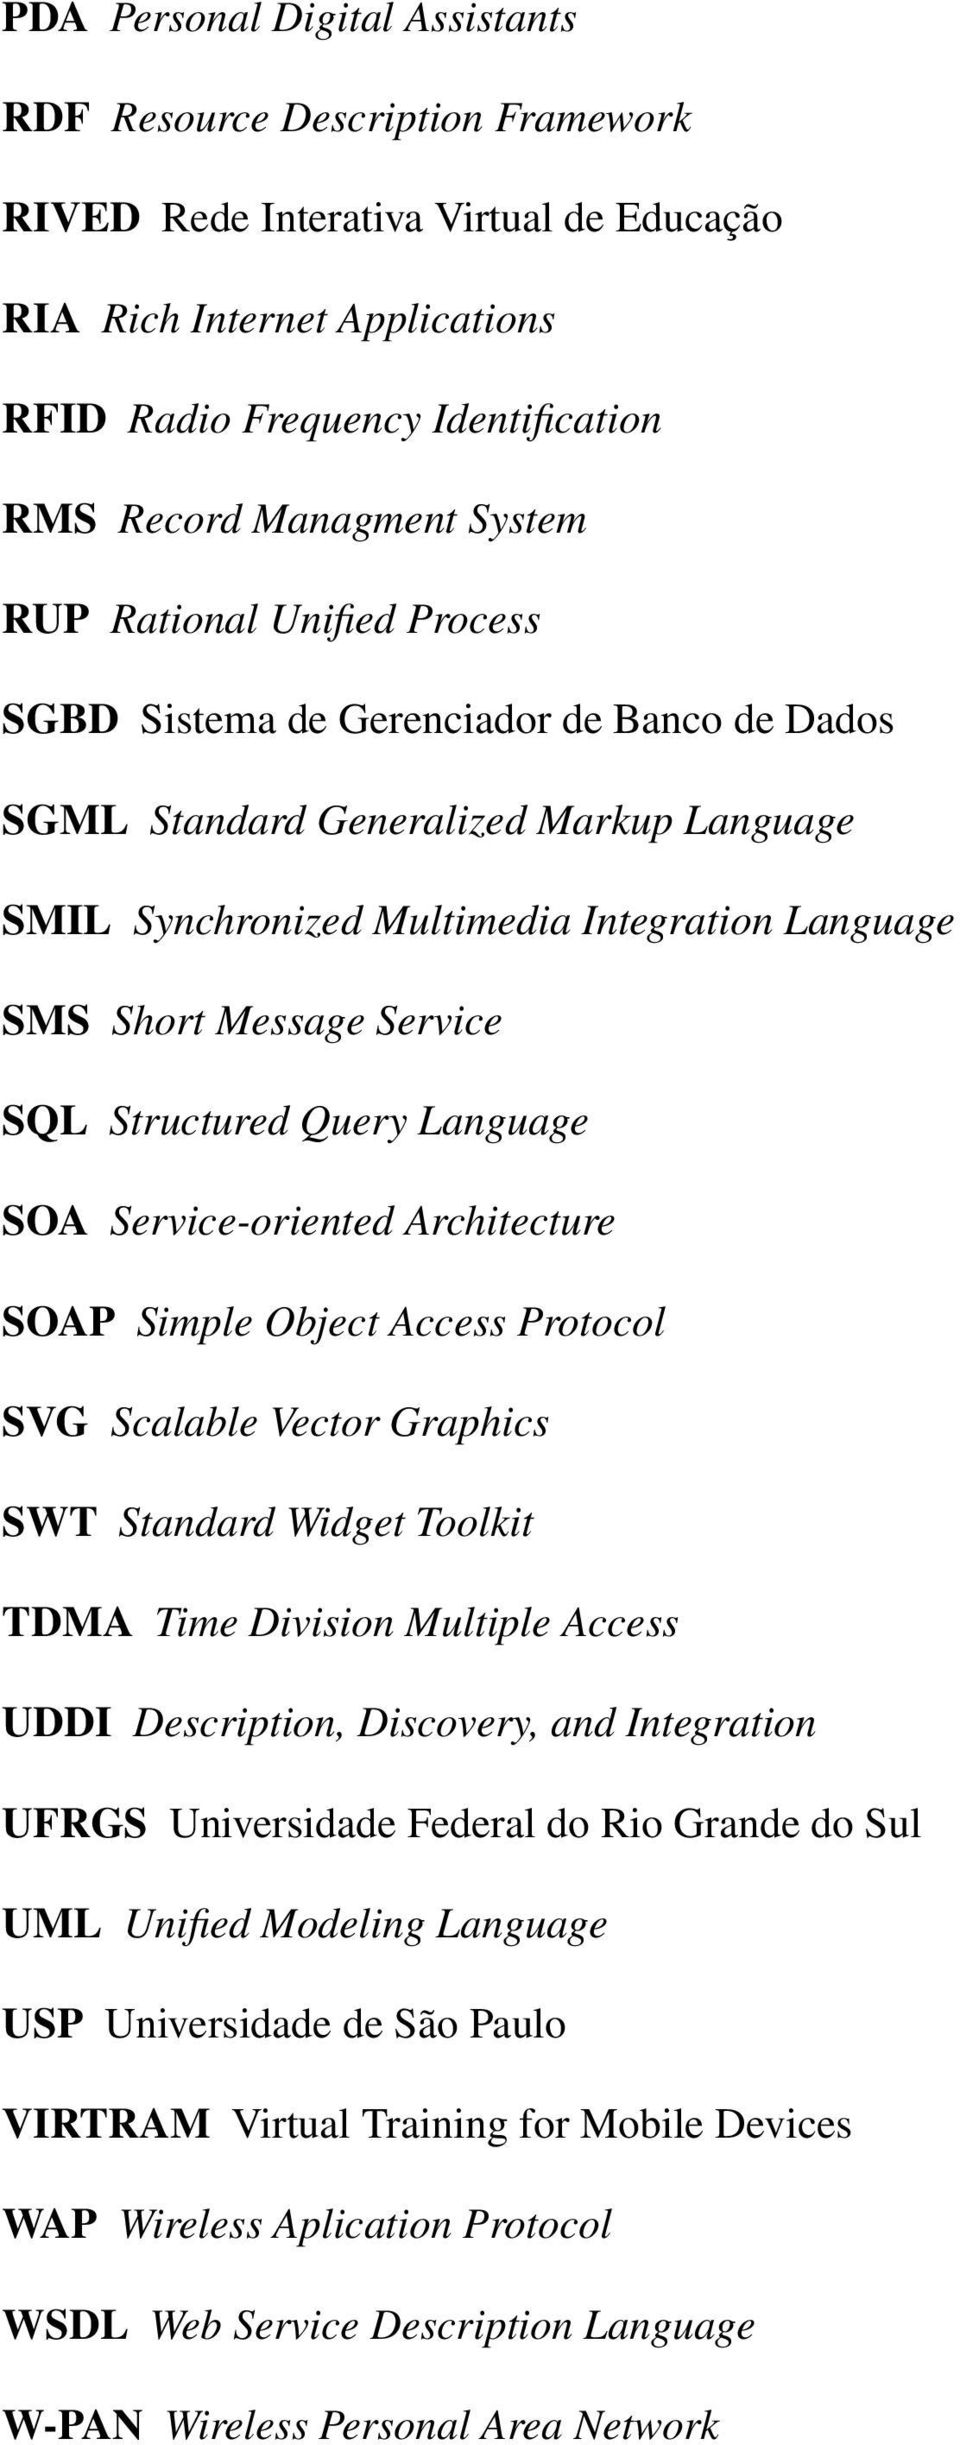 SQL Structured Query Language SOA Service-oriented Architecture SOAP Simple Object Access Protocol SVG Scalable Vector Graphics SWT Standard Widget Toolkit TDMA Time Division Multiple Access UDDI